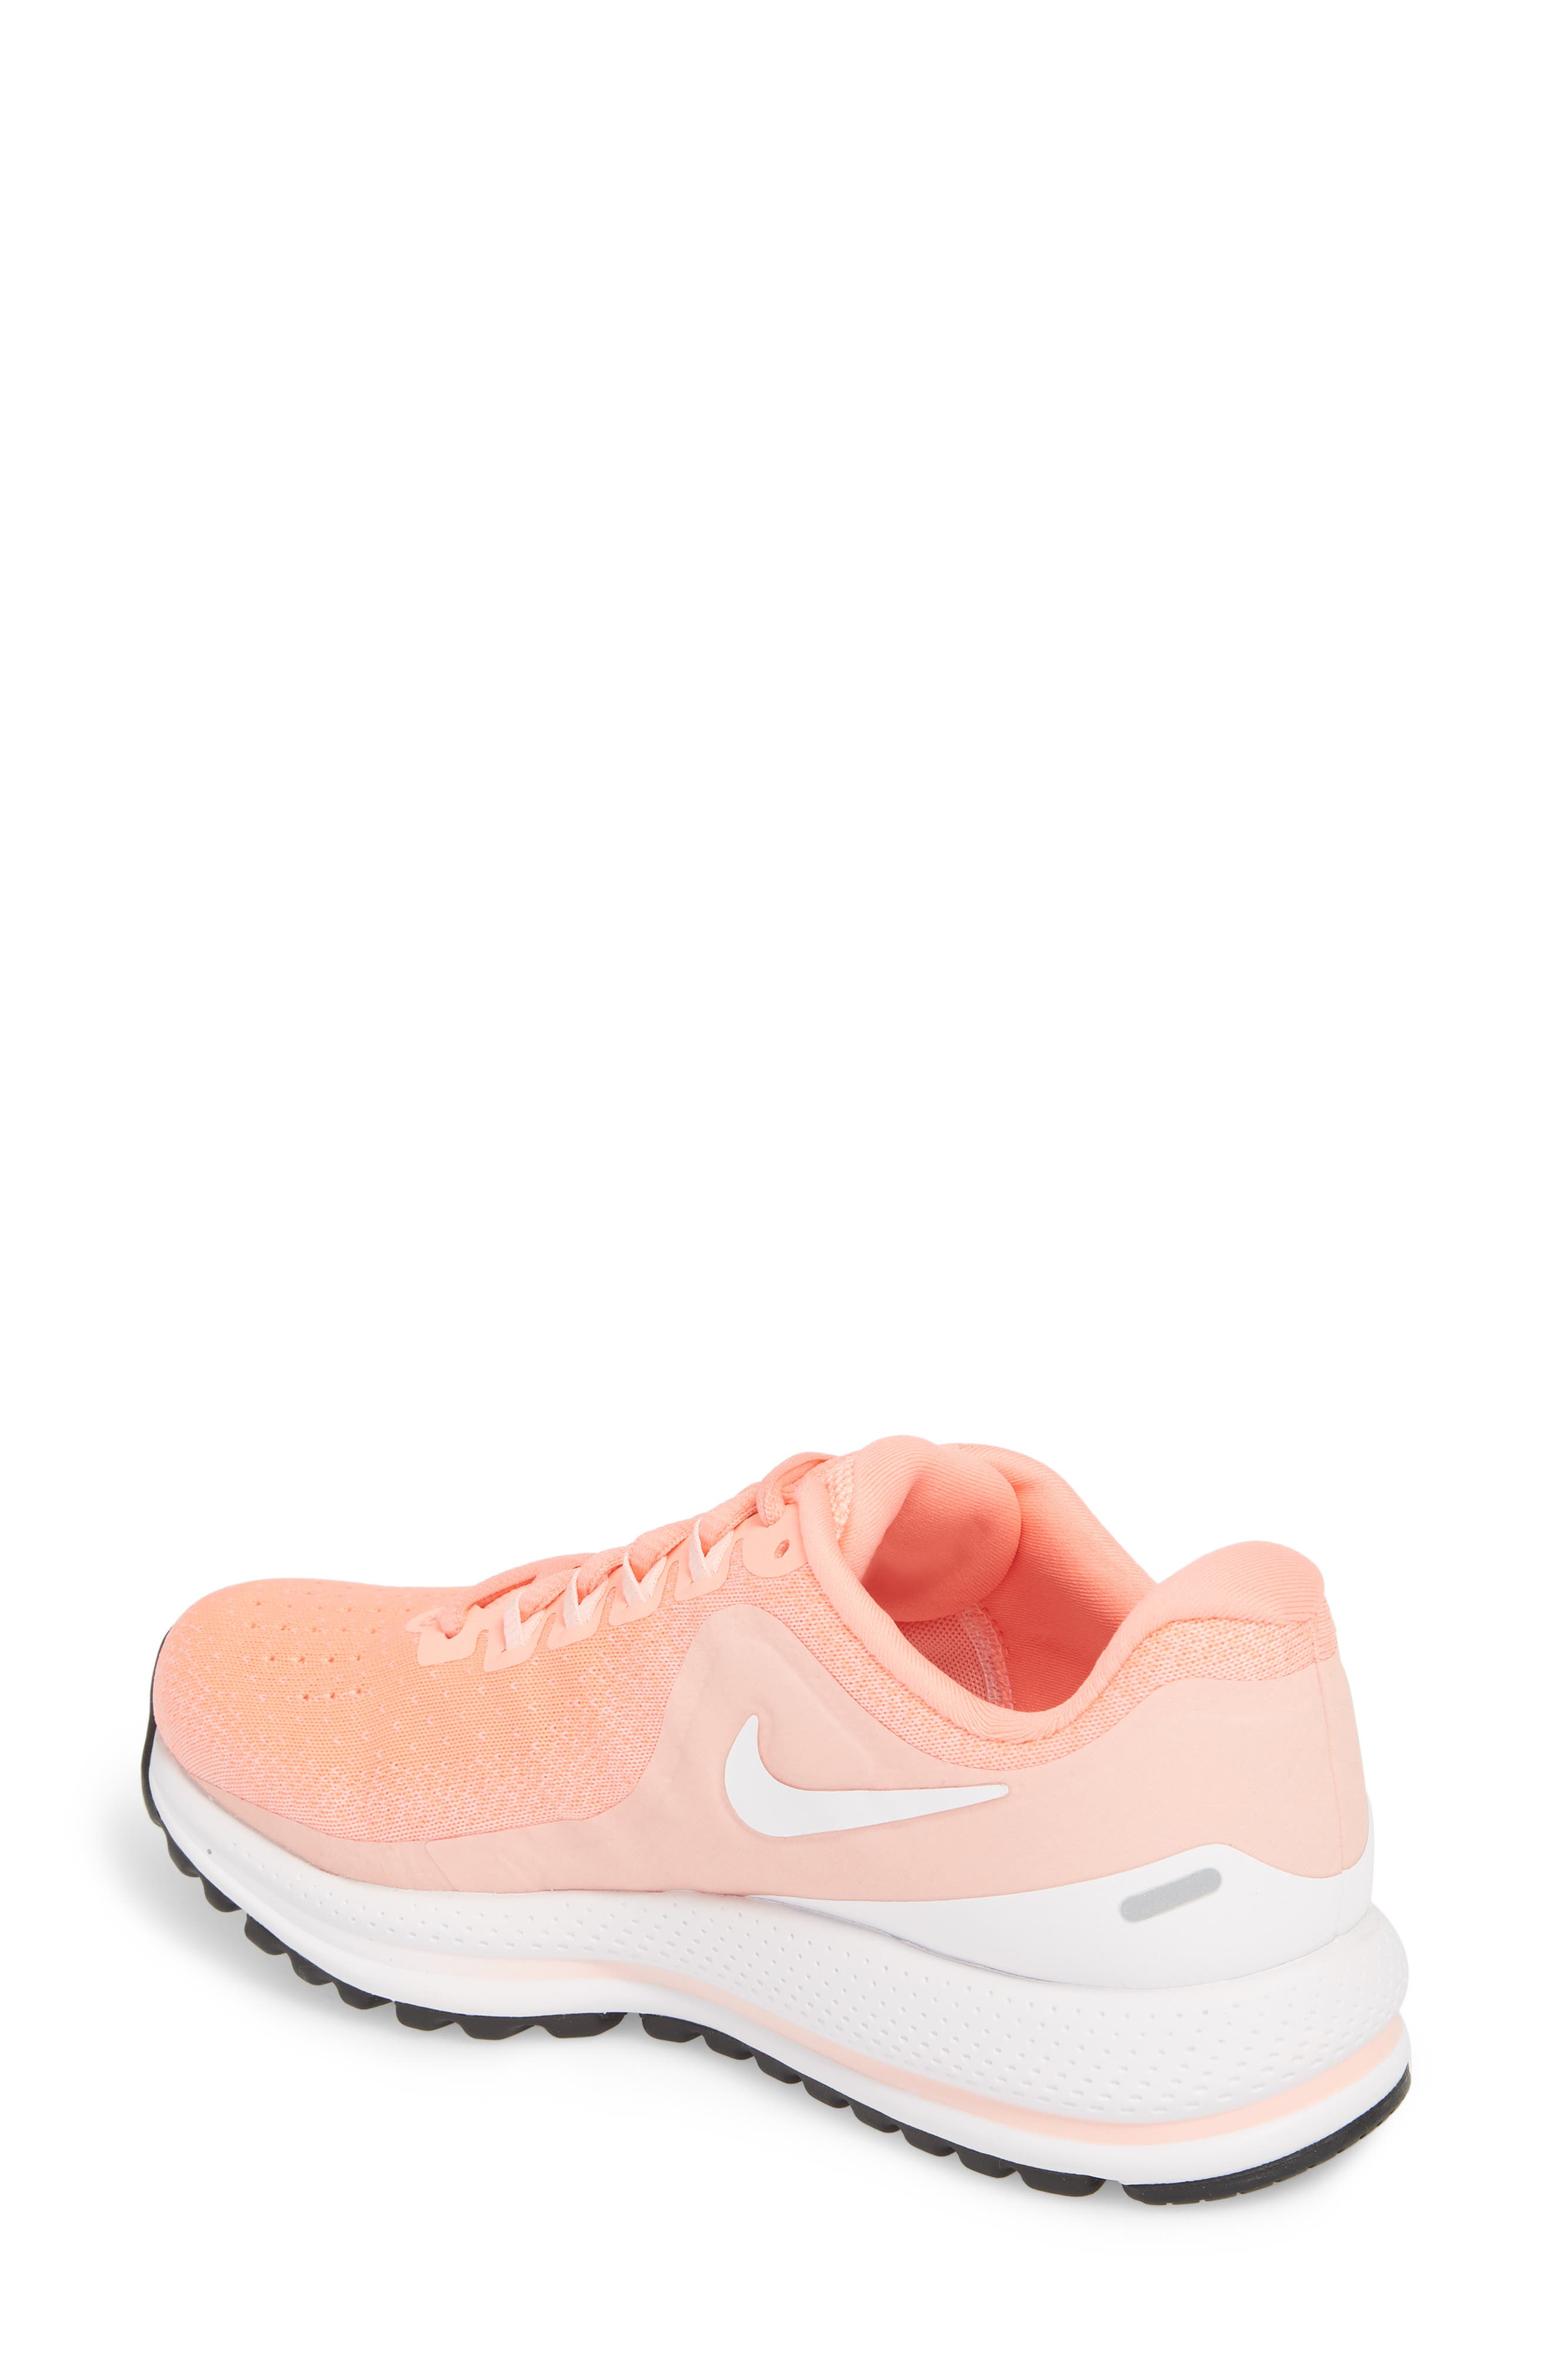 Air Zoom Vomero 13 Running Shoe,                             Alternate thumbnail 2, color,                             LIGHT ATOMIC PINK/ WHITE